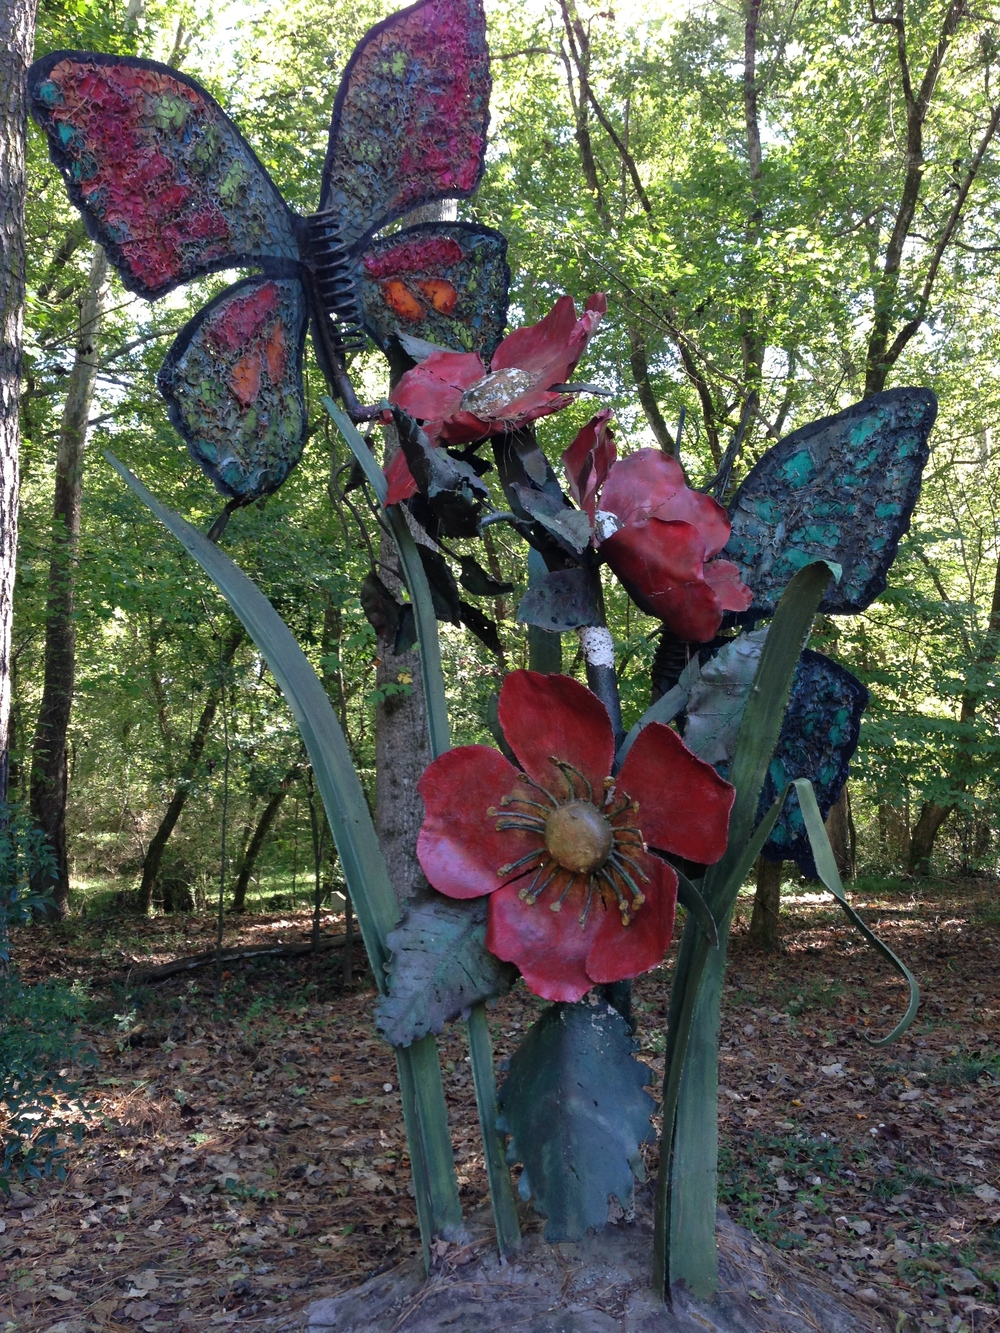 Sculpture near the trailhead.